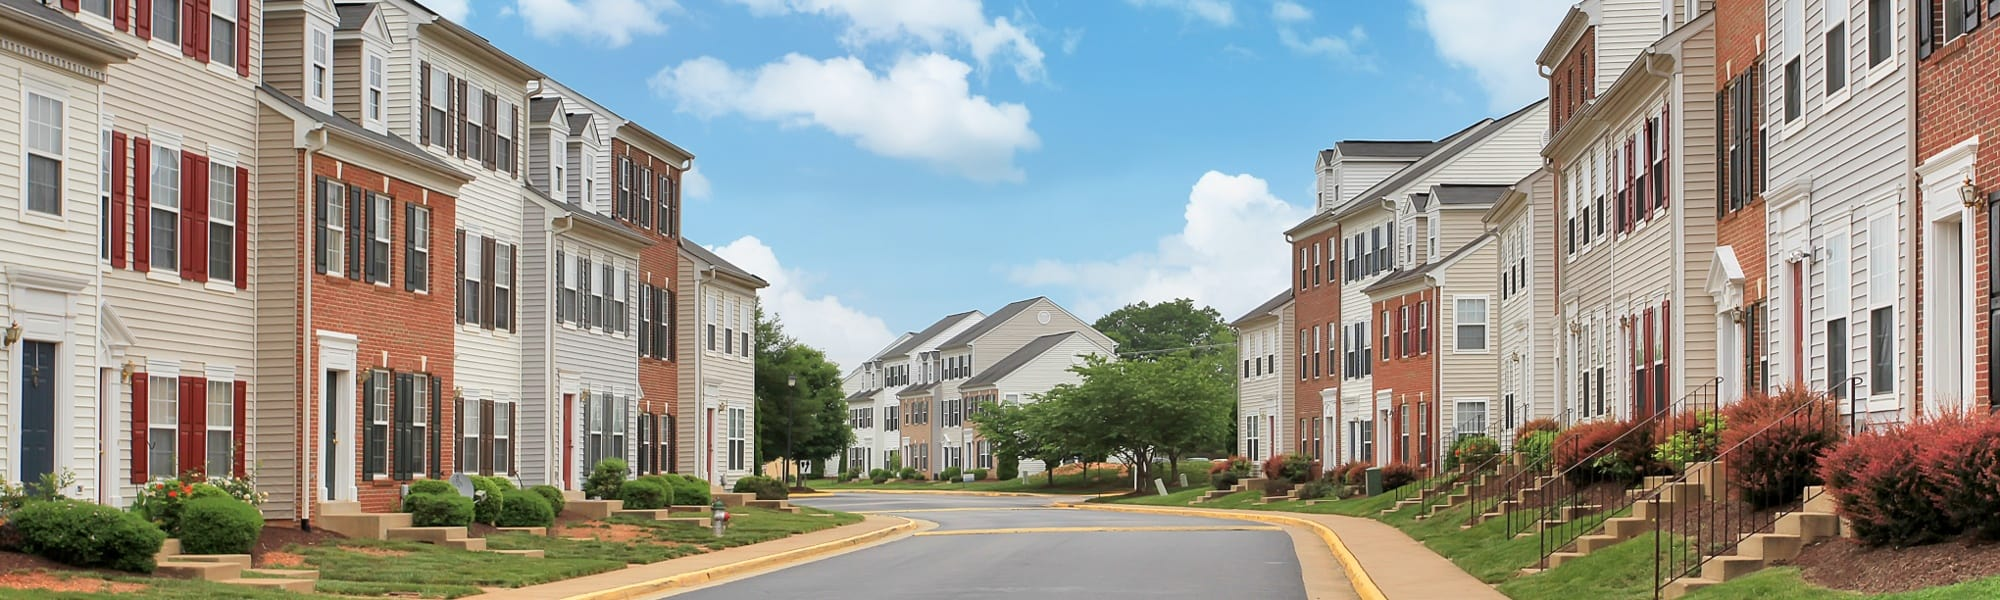 2 and 3 bedrooms offered at apartments in Fredericksburg